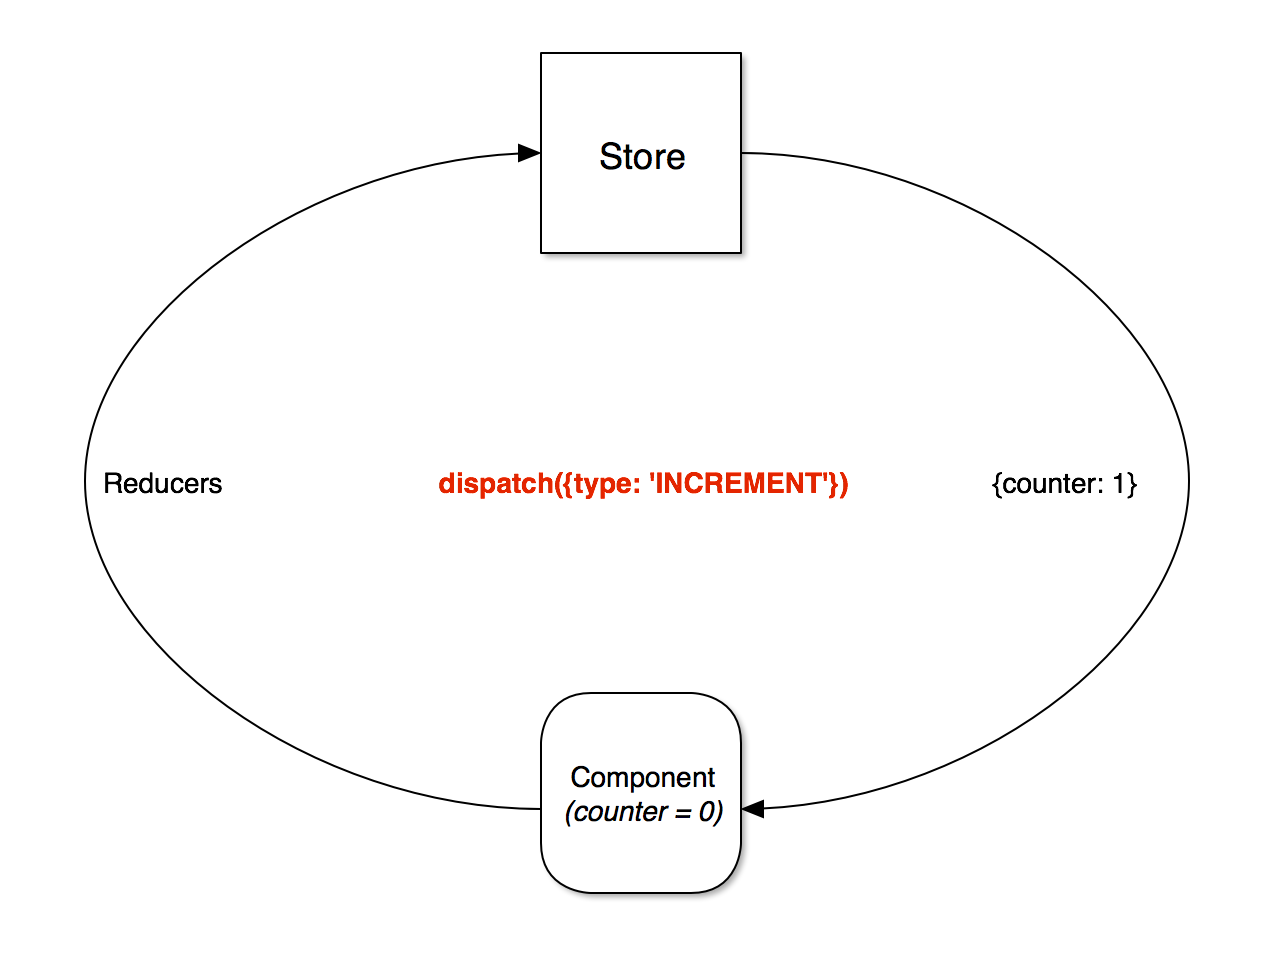 Context diagram dan data flow diagram diy enthusiasts wiring a comprehensive introduction to ngrx store companion to egghead rh gist github com context diagram and data flow diagram perbedaan context diagram dengan ccuart Image collections